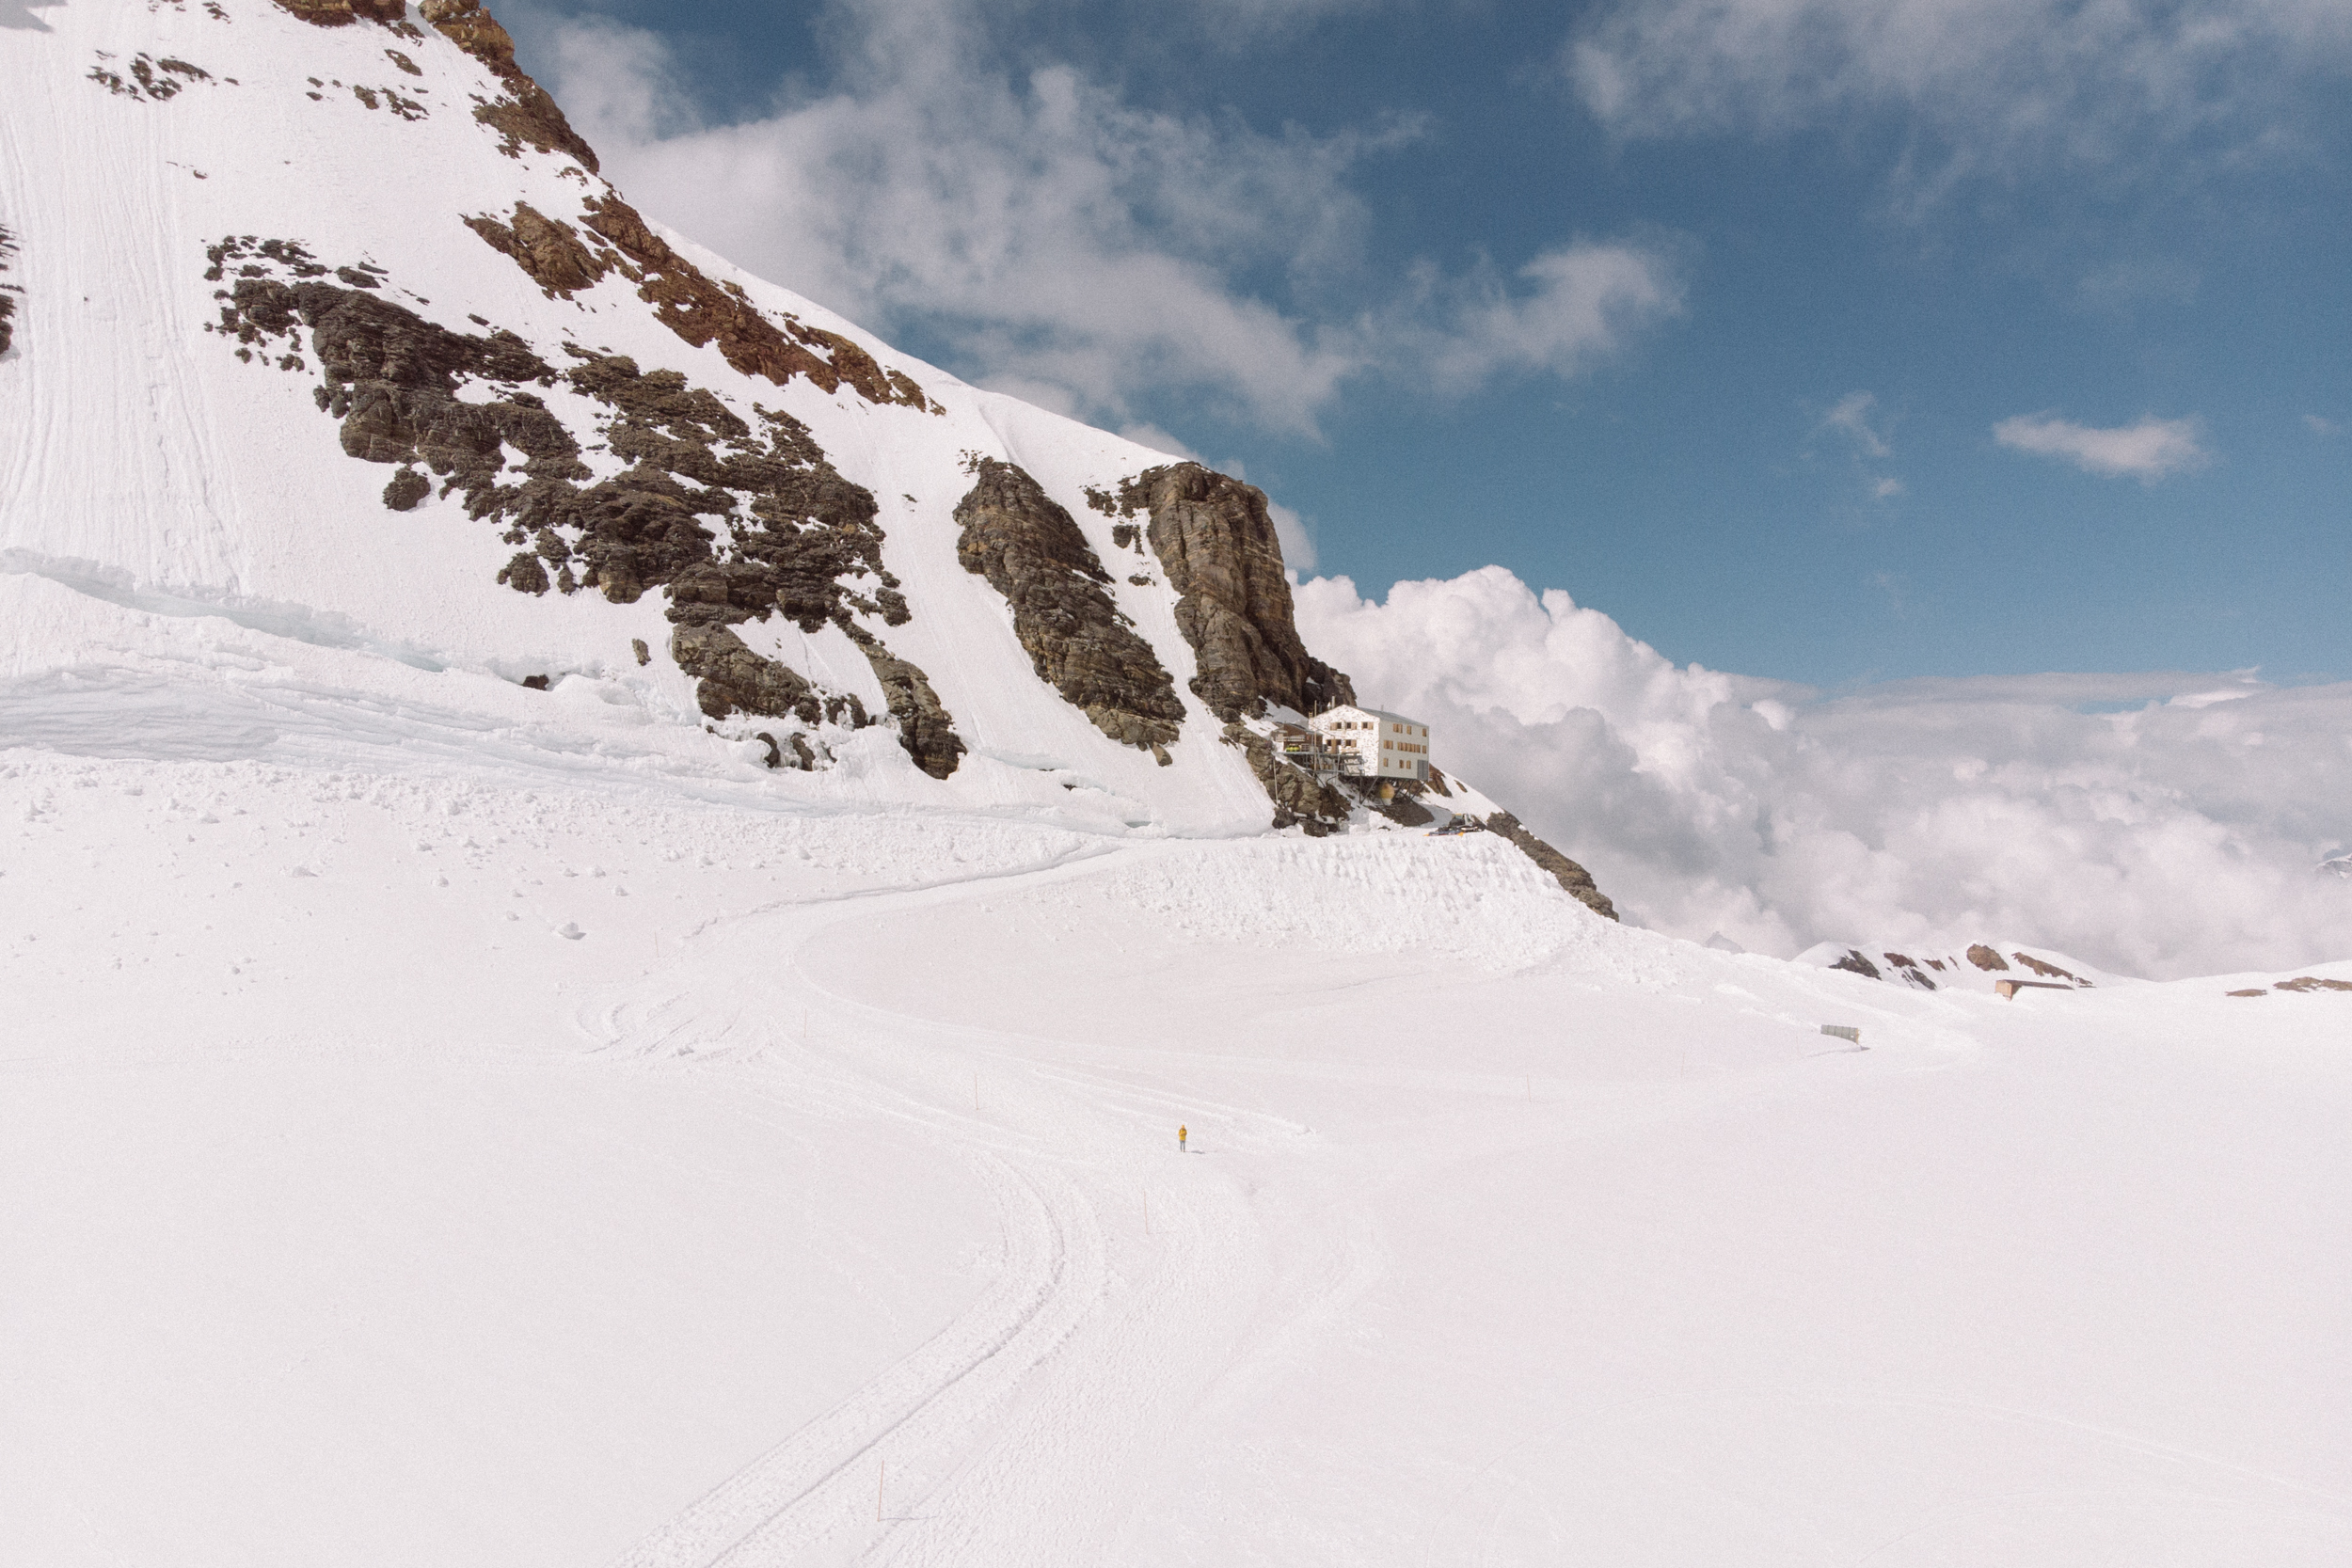 Drone photo looking back at the Mönchsjoch Hut. The speck in the middle of the frame is me.